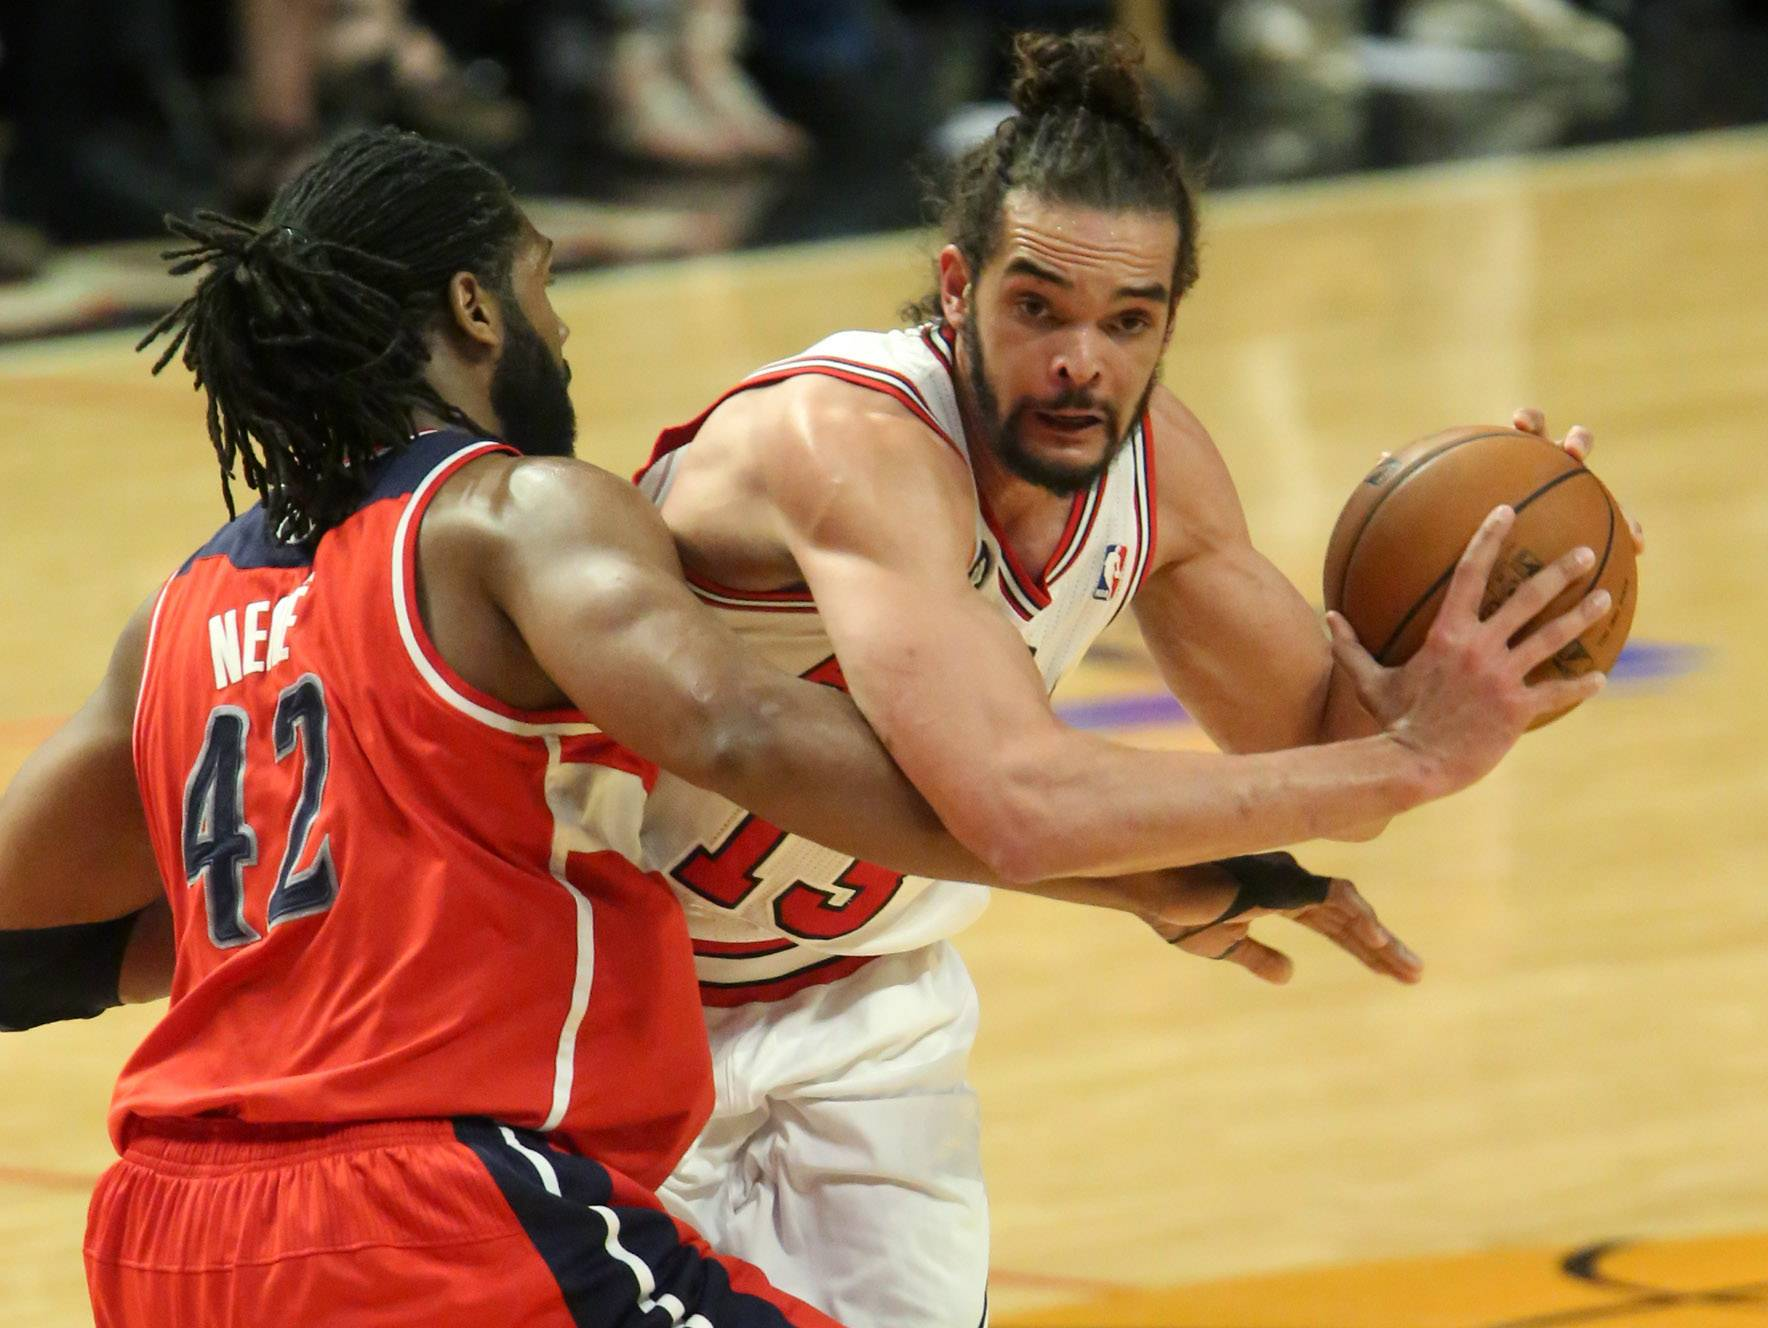 George LeClaire/gleclaire@dailyherald.comThe quiet play of center Joakim Noah hurt the Bulls in Game 1. They'll need more from Noah to counter Wizards forward Nene Hilario, left, and center Martin Gortat in Game 2.